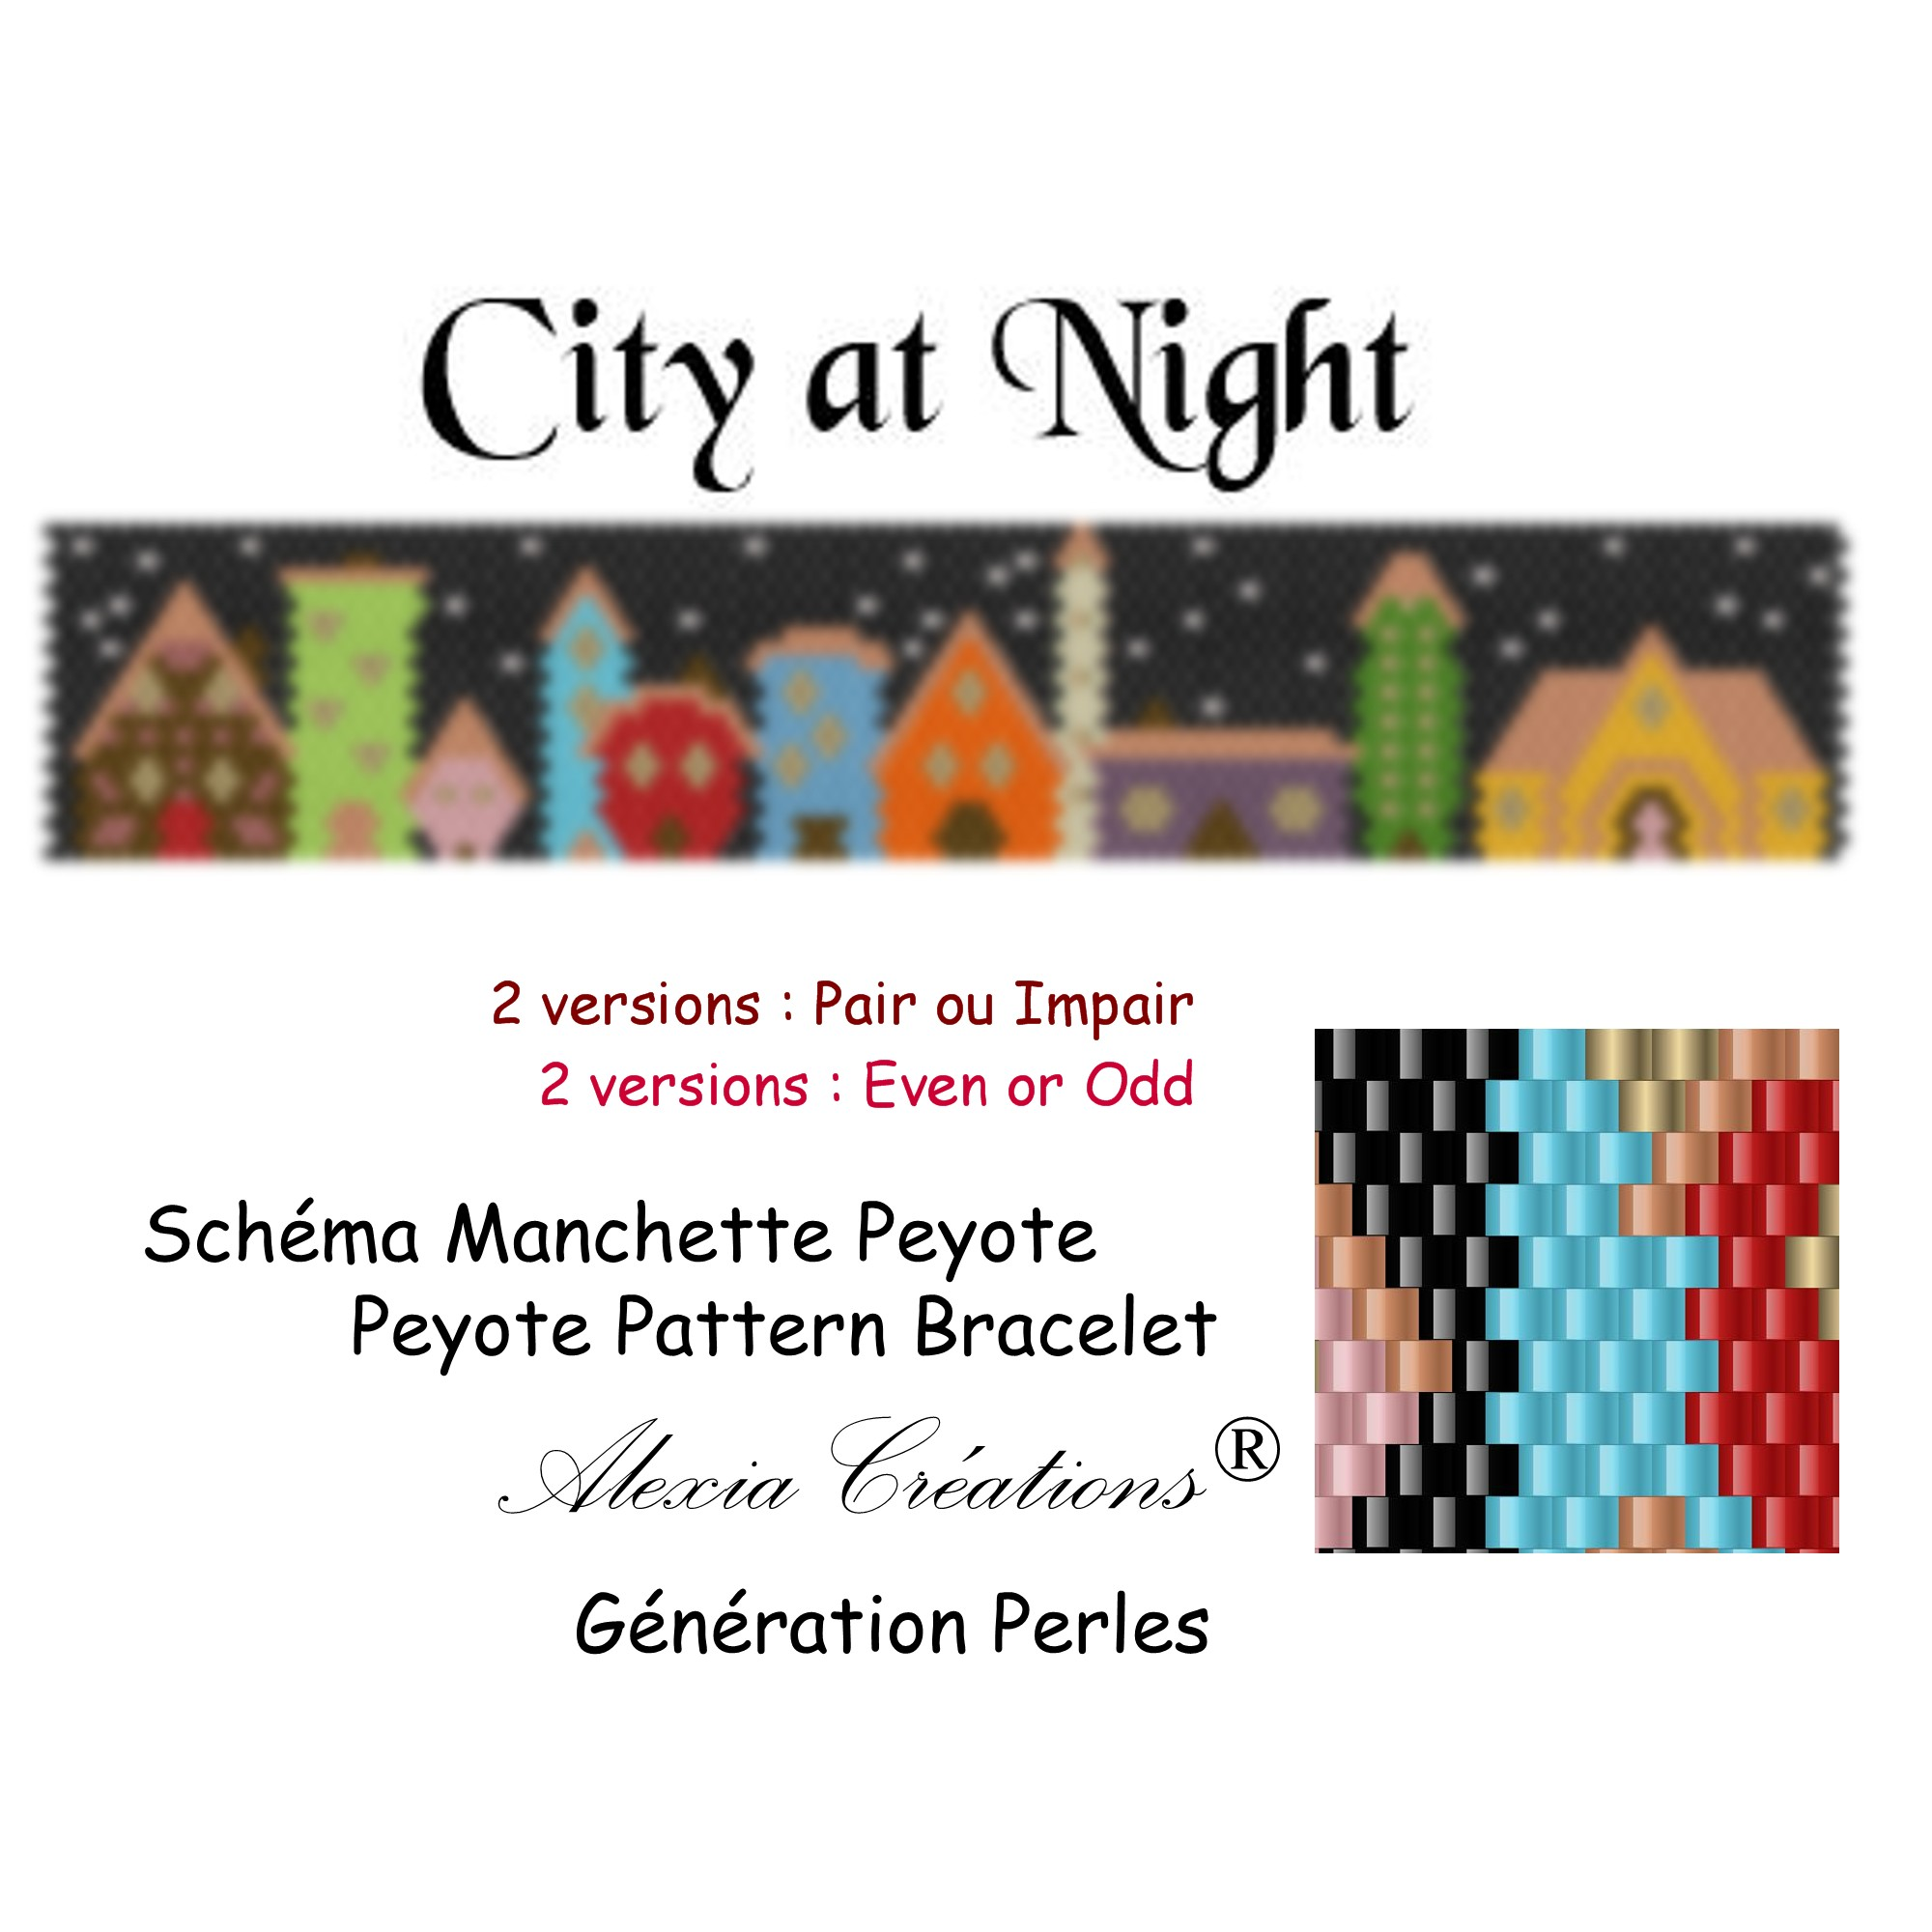 Manchette peyote City at Night